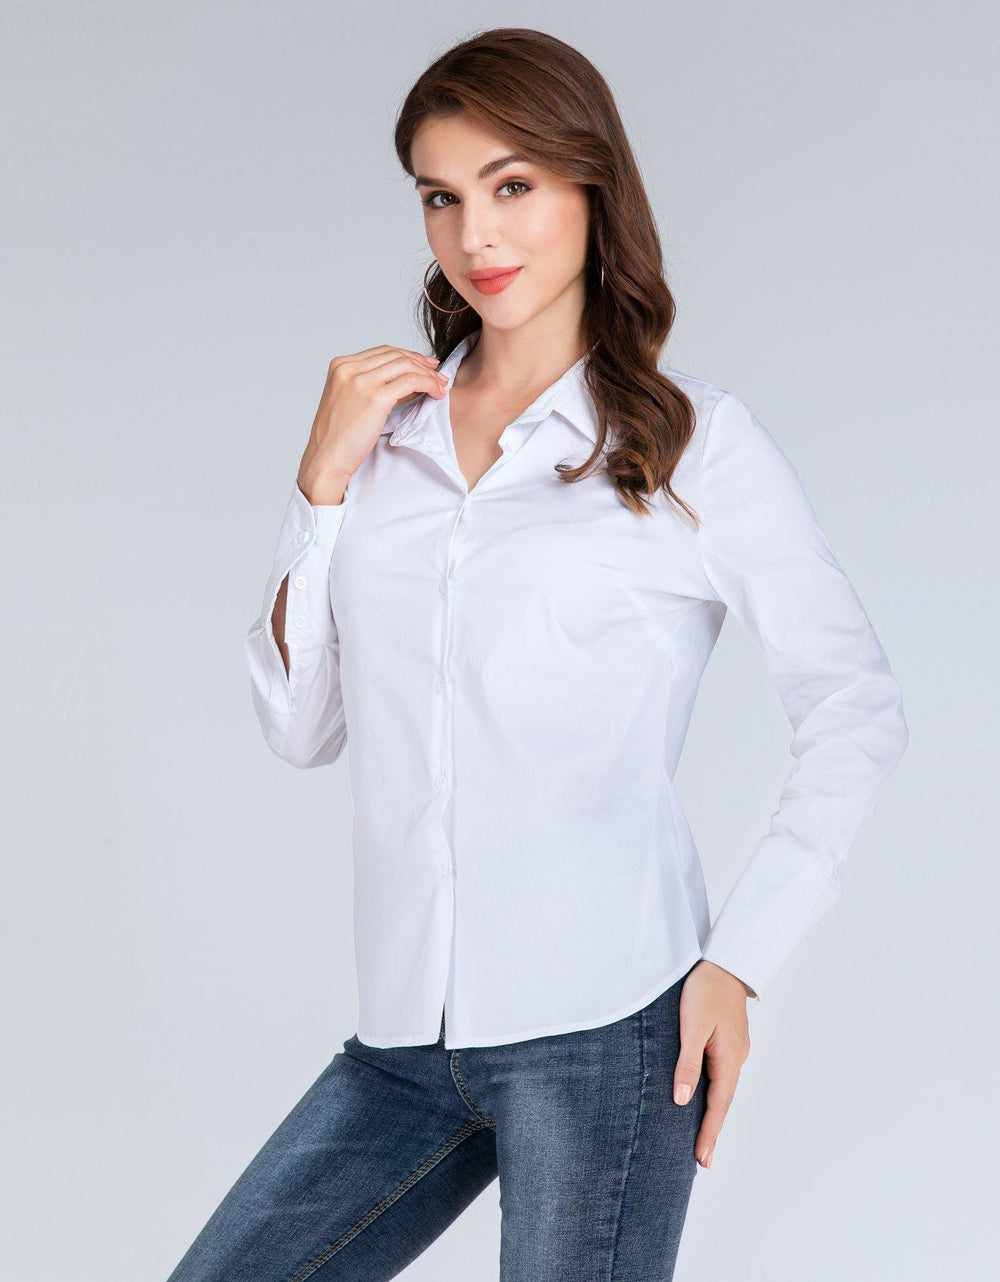 Long Sleeve Collared Shirt - Brandsea UK